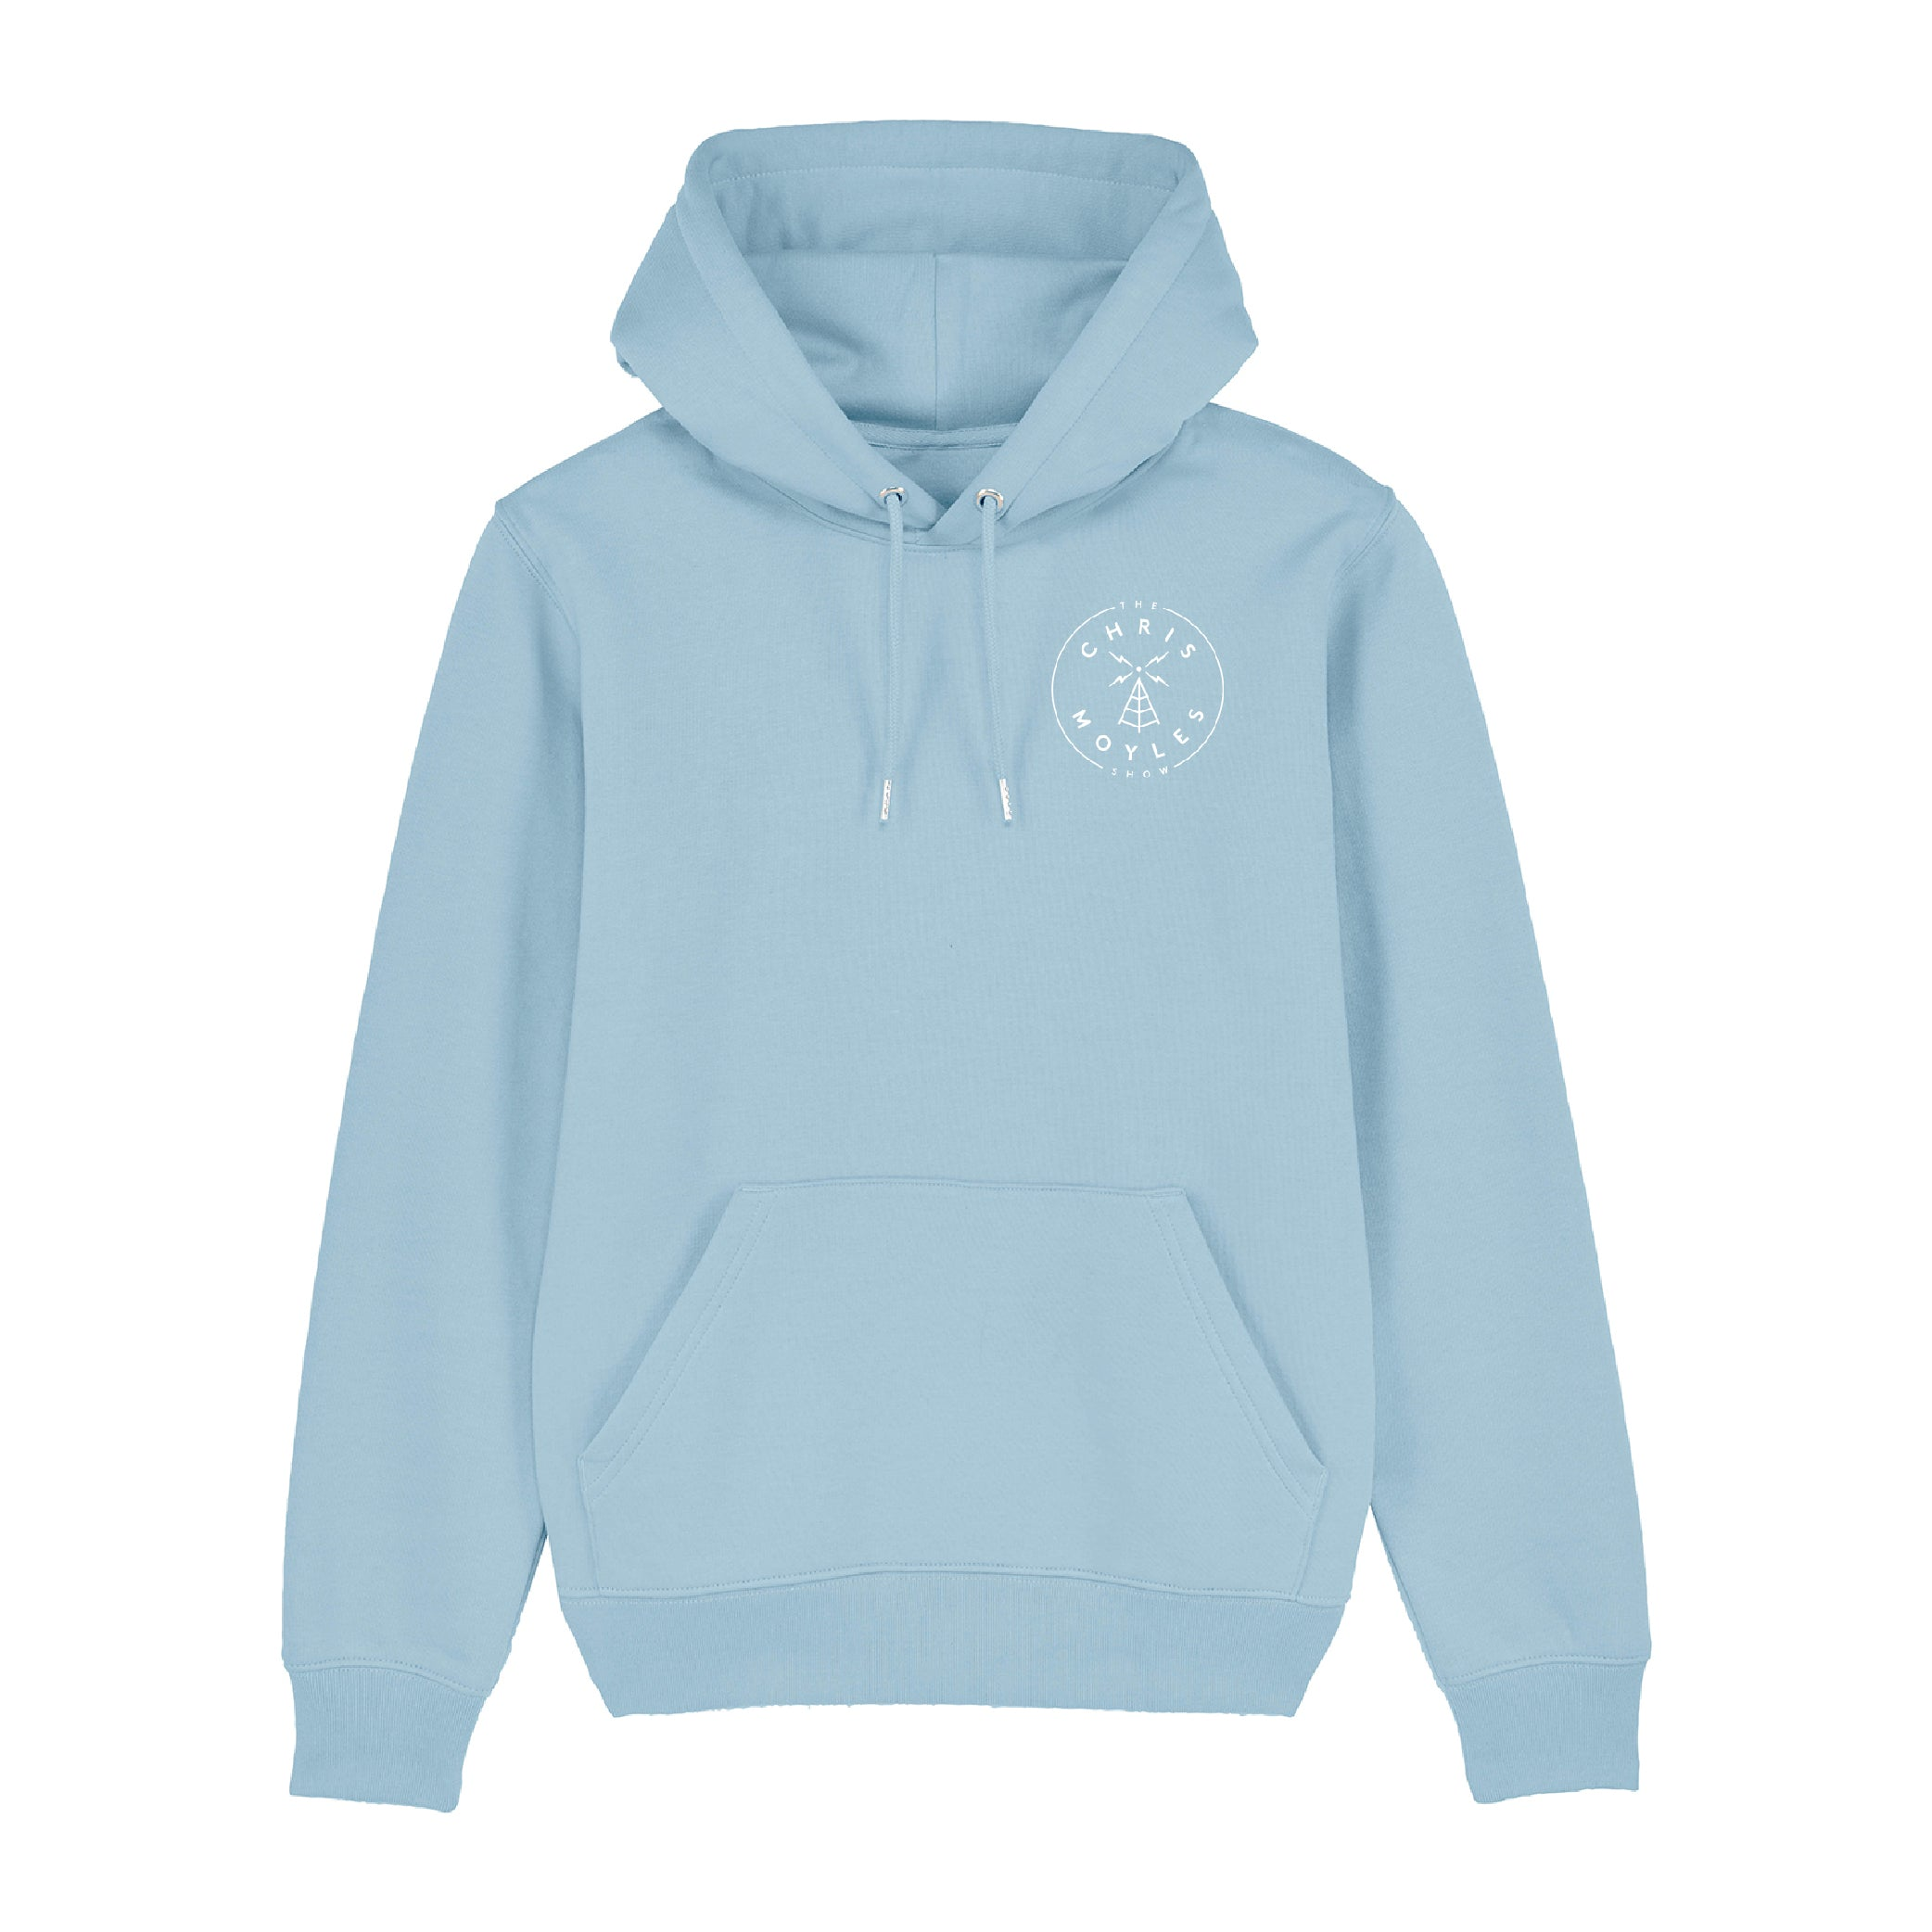 'The Chris Moyles Show' Small Print Hoodie - Sky Blue